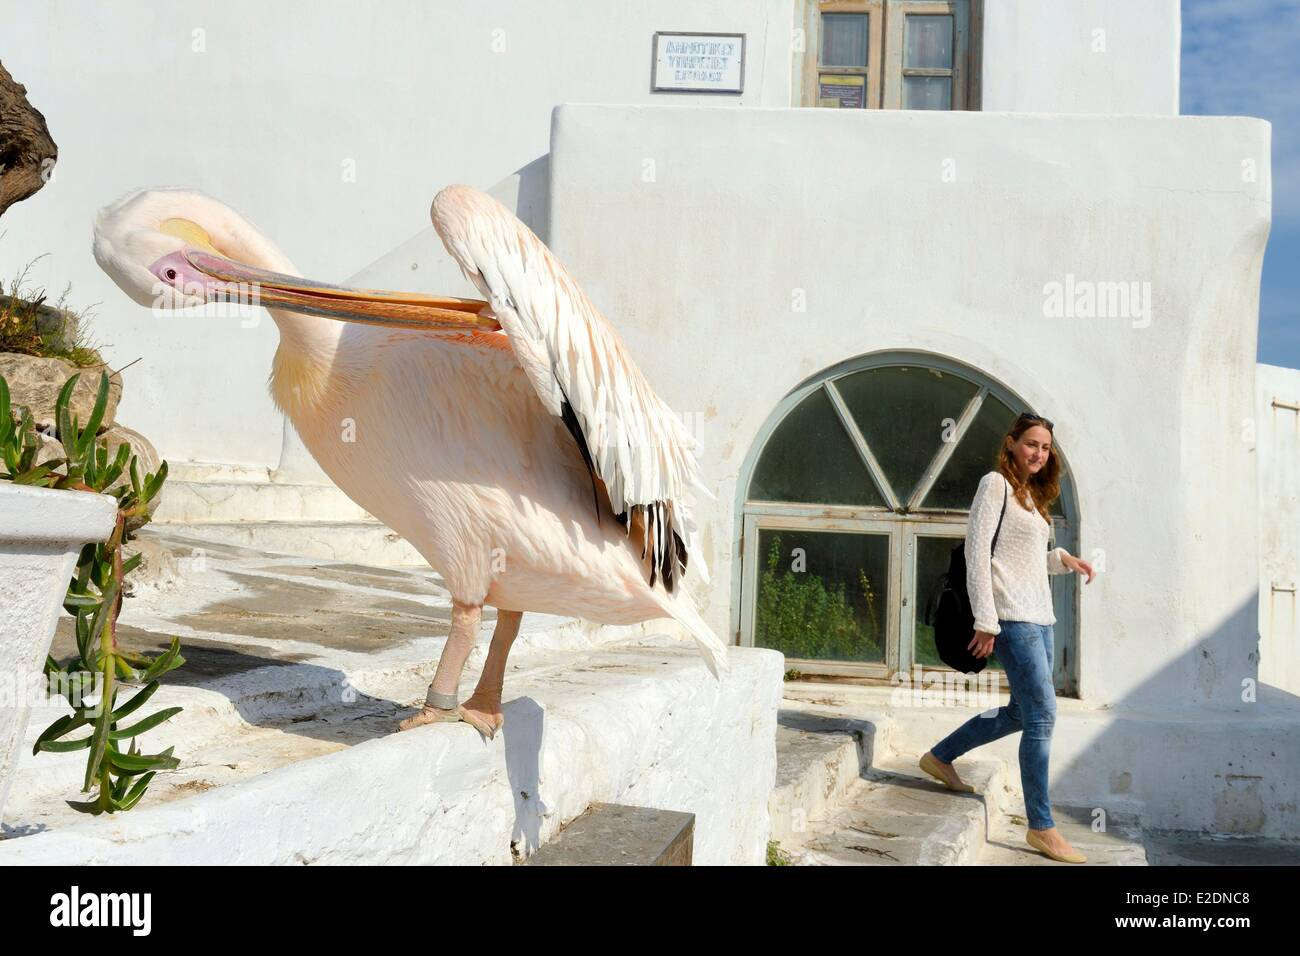 Greece Cyclades islands Mykonos island Chora (Mykonos town) the pelican became the mascot of the city - Stock Image